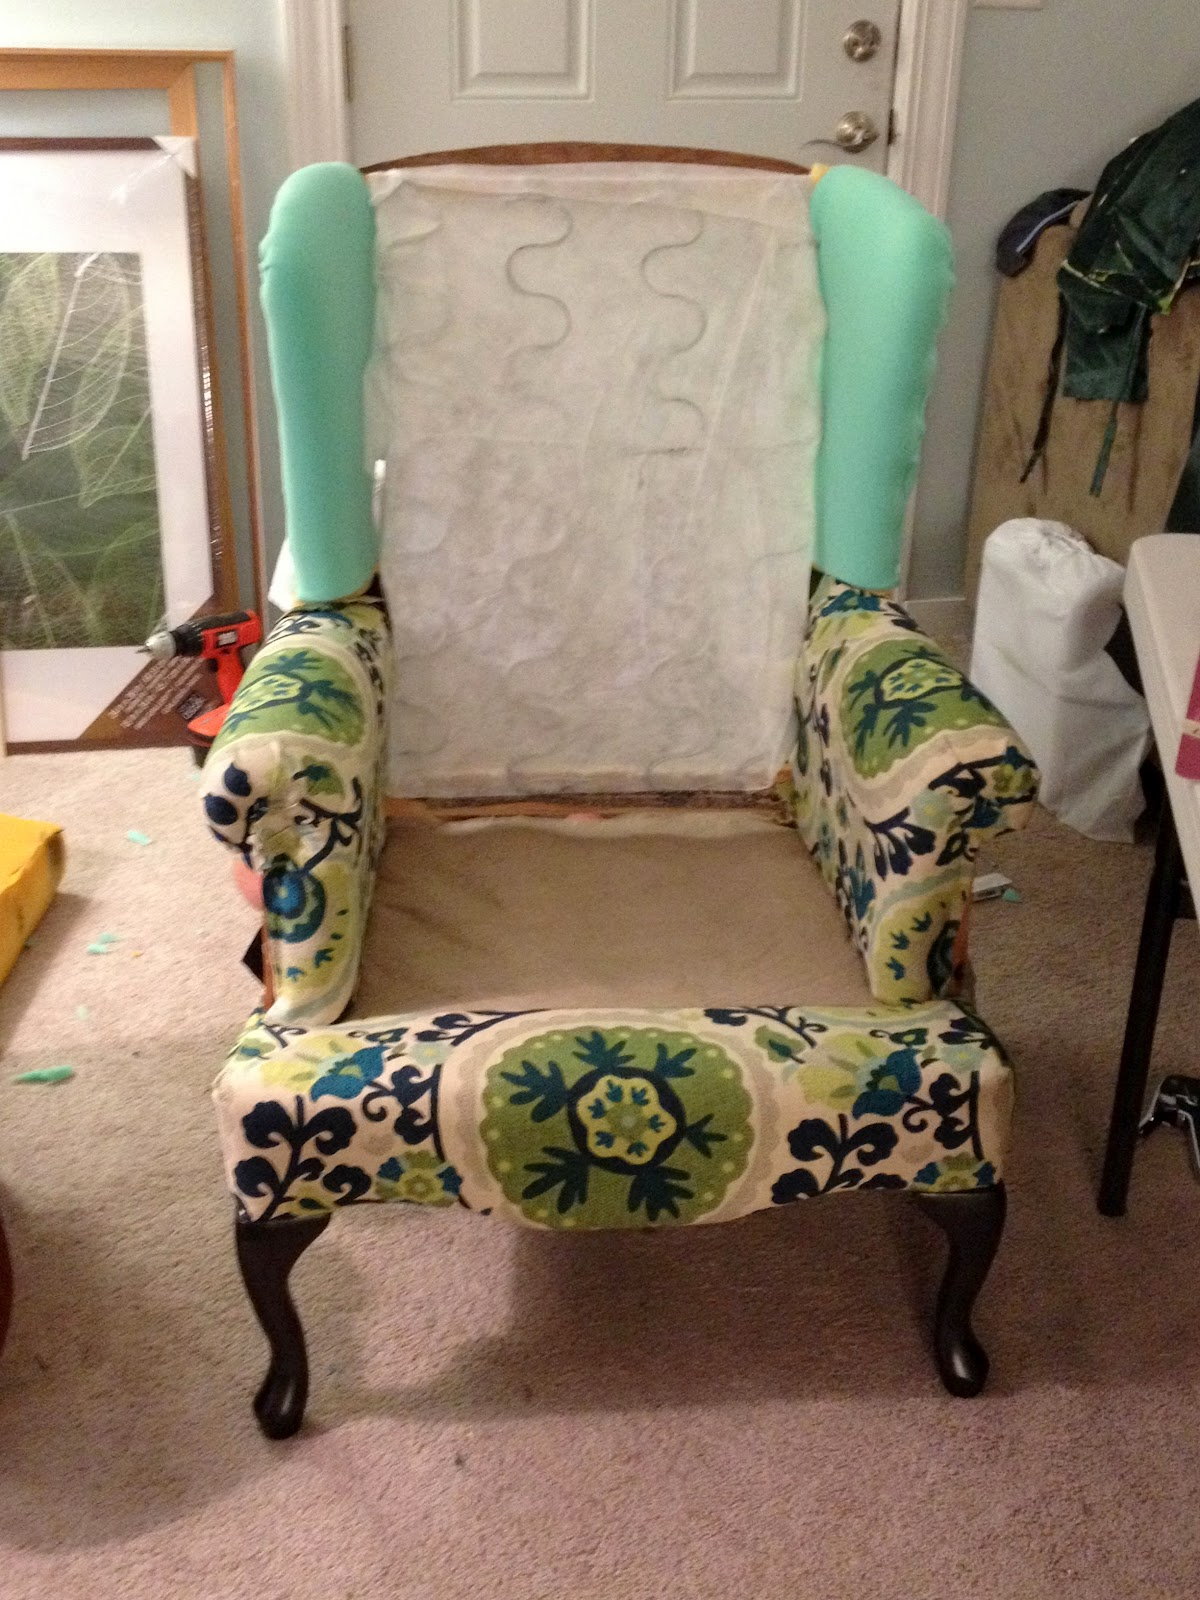 upholstering a chair lightweight aluminum webbed folding lawn chairs make bake and love re wing back